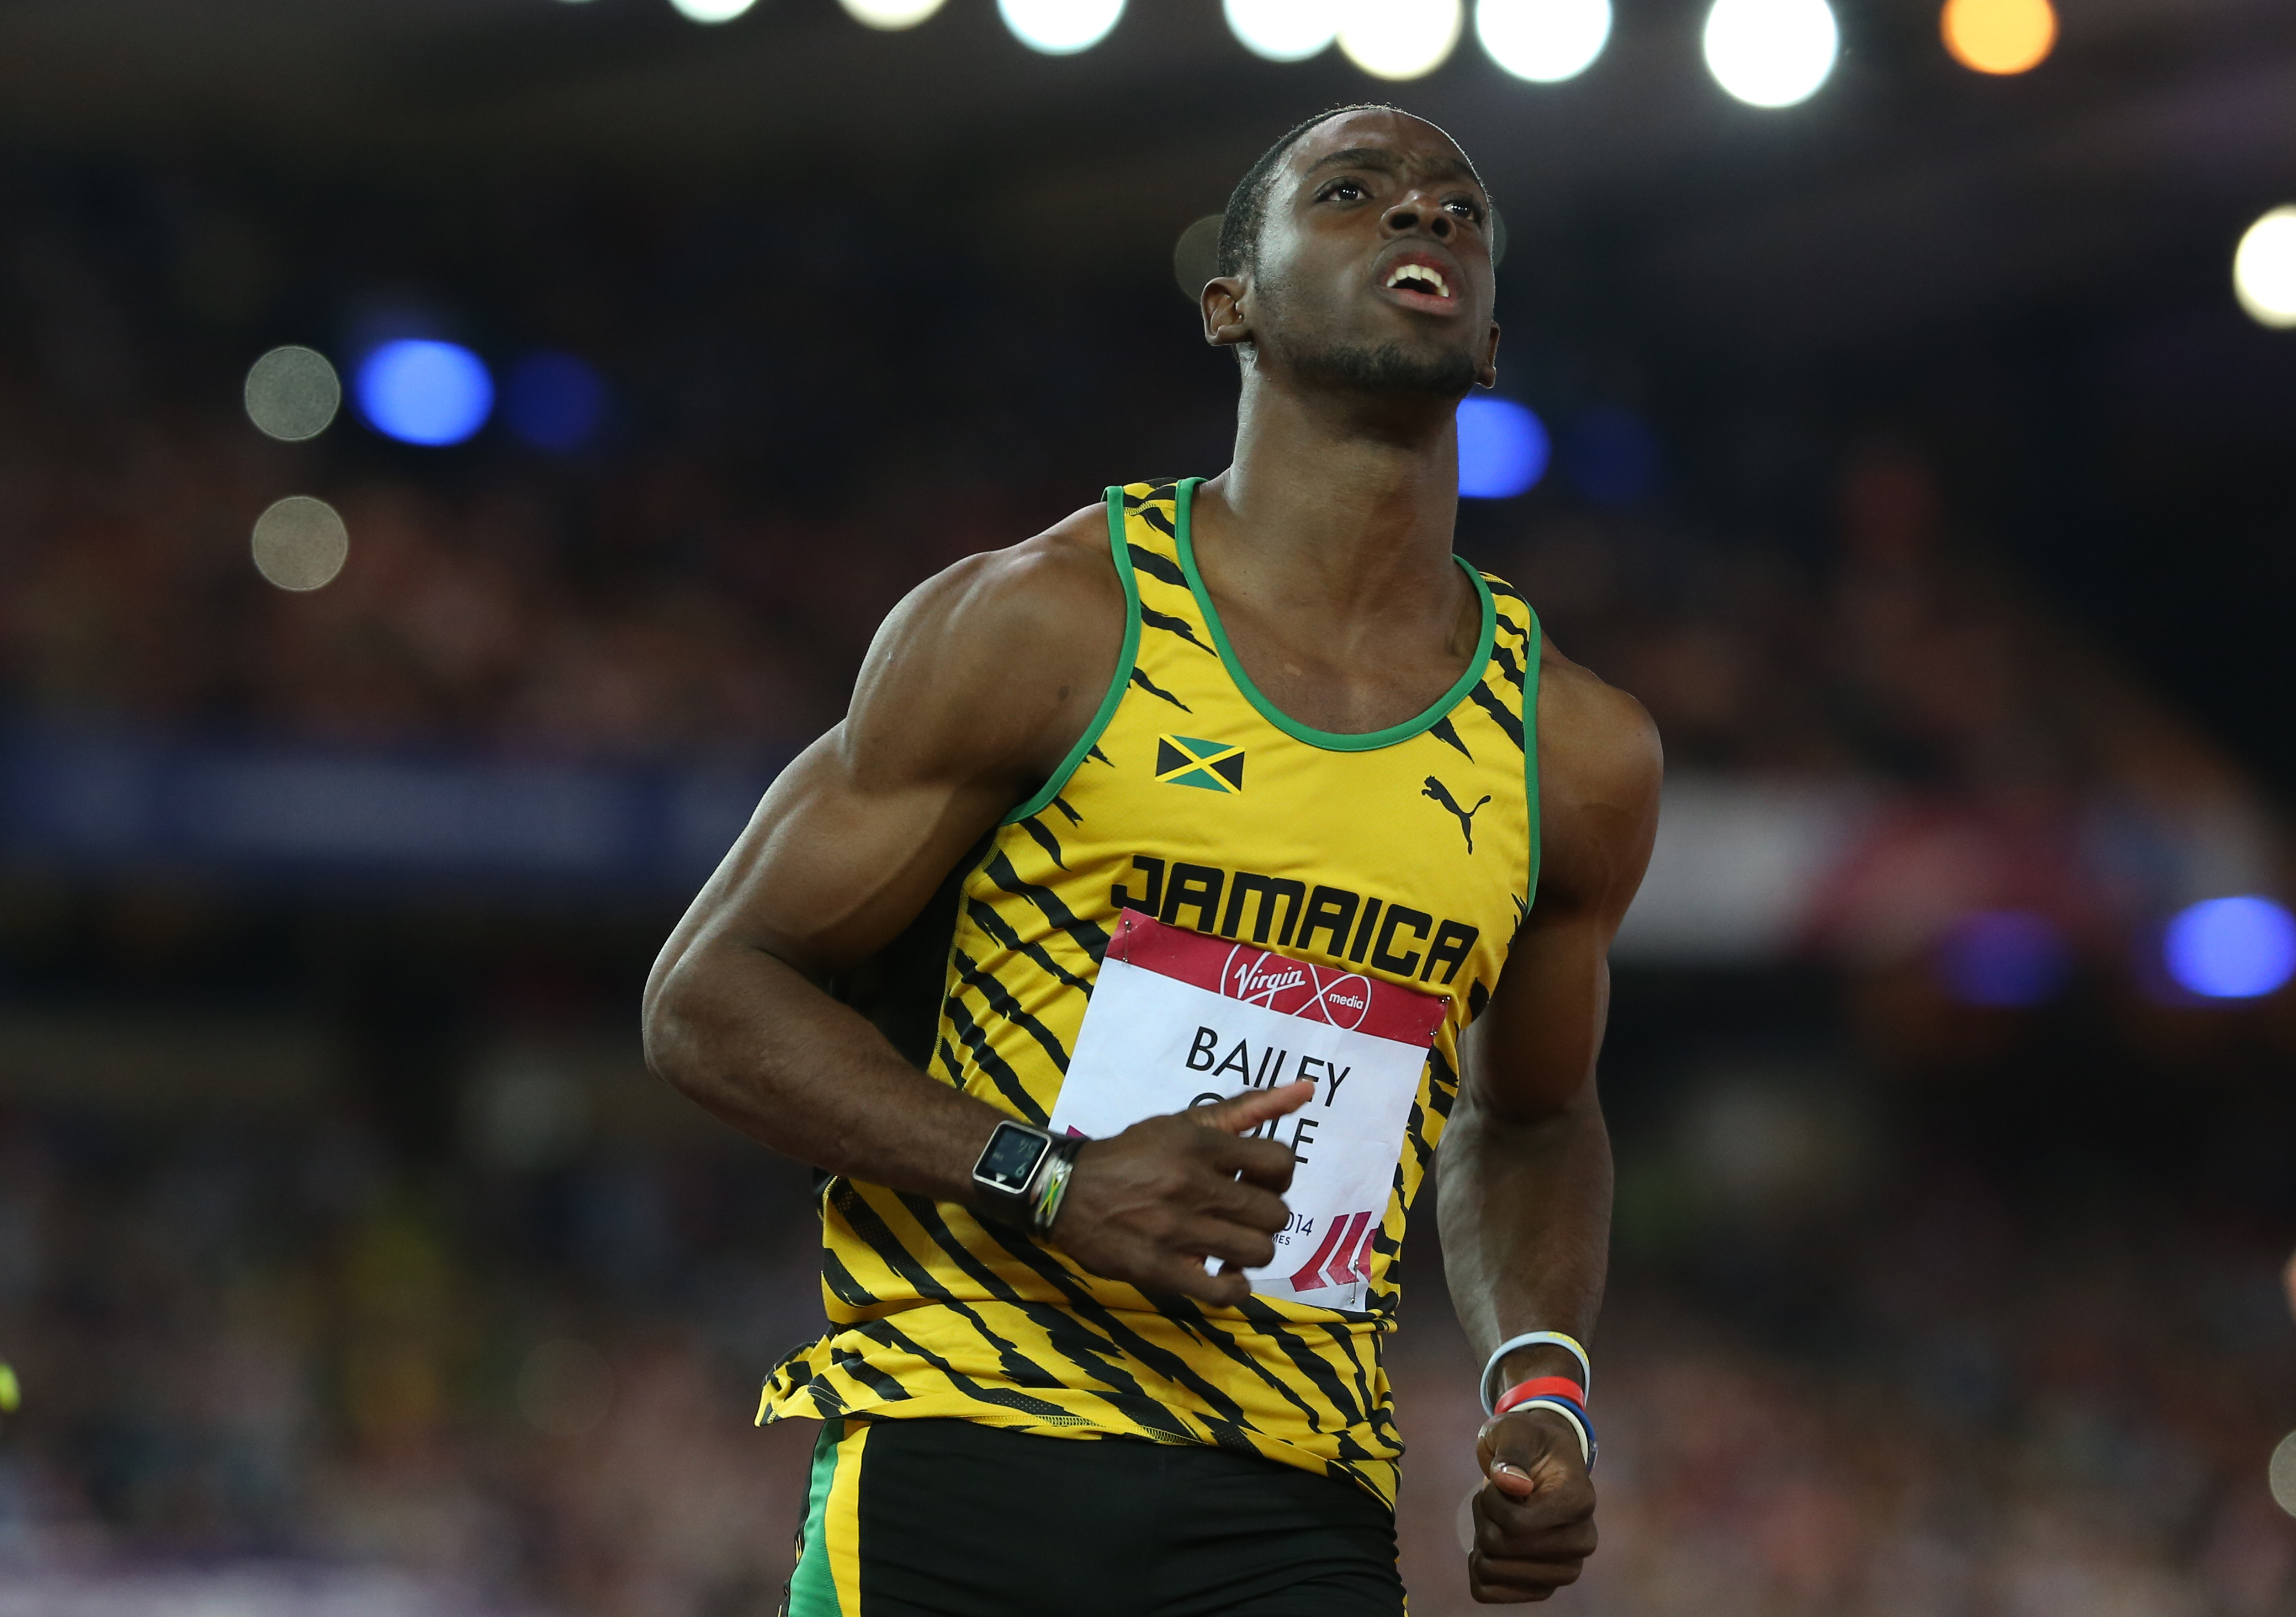 FILE - In this  July 28, 2014 file photo, Kemar Bailey-Cole of Jamaica looks up at a large video screen after winning the men's 100 meter race at Hampden Park stadium during the Commonwealth Games 2014 in Glasgow, Scotland. The Jamaican sprinter says he w